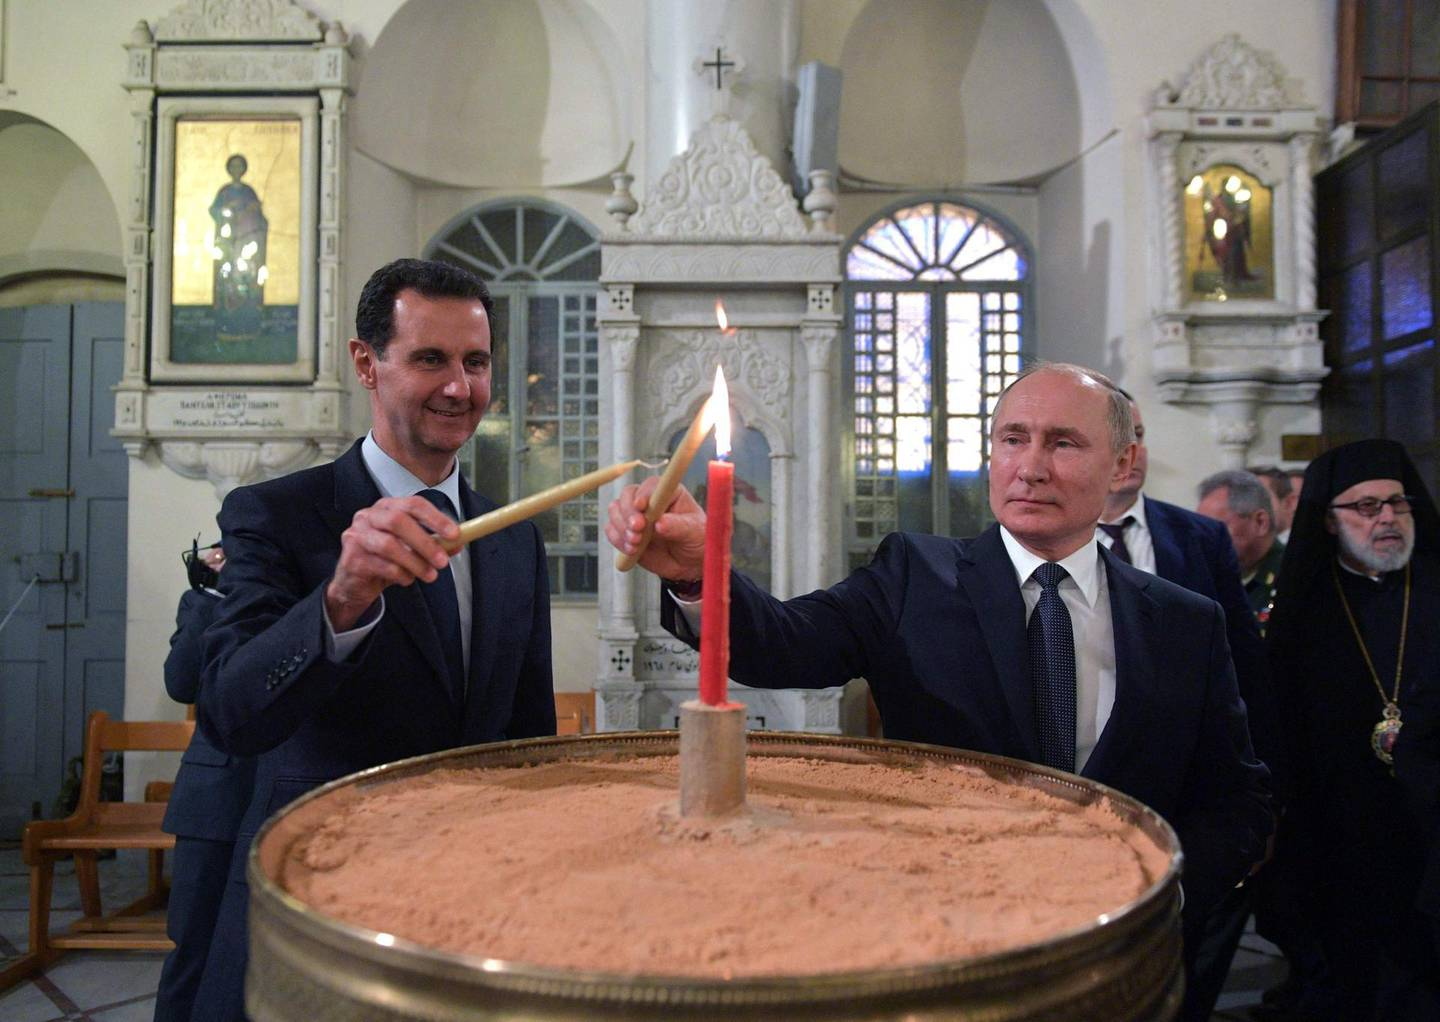 (FILES) In this file photo taken on January 07, 2020 Russian President Vladimir Putin and Syrian President Bashar al-Assad visit the Mariamite Cathedral of Damascus, one of the oldest Greek Orthodox churches in the Syrian capital, in Damascus. A decade of war may have ravaged his country, but Syria's President Bashar al-Assad has clung to power and looks determined to cement his position in presidential elections this year. / AFP / SPUTNIK / Alexey DRUZHININ